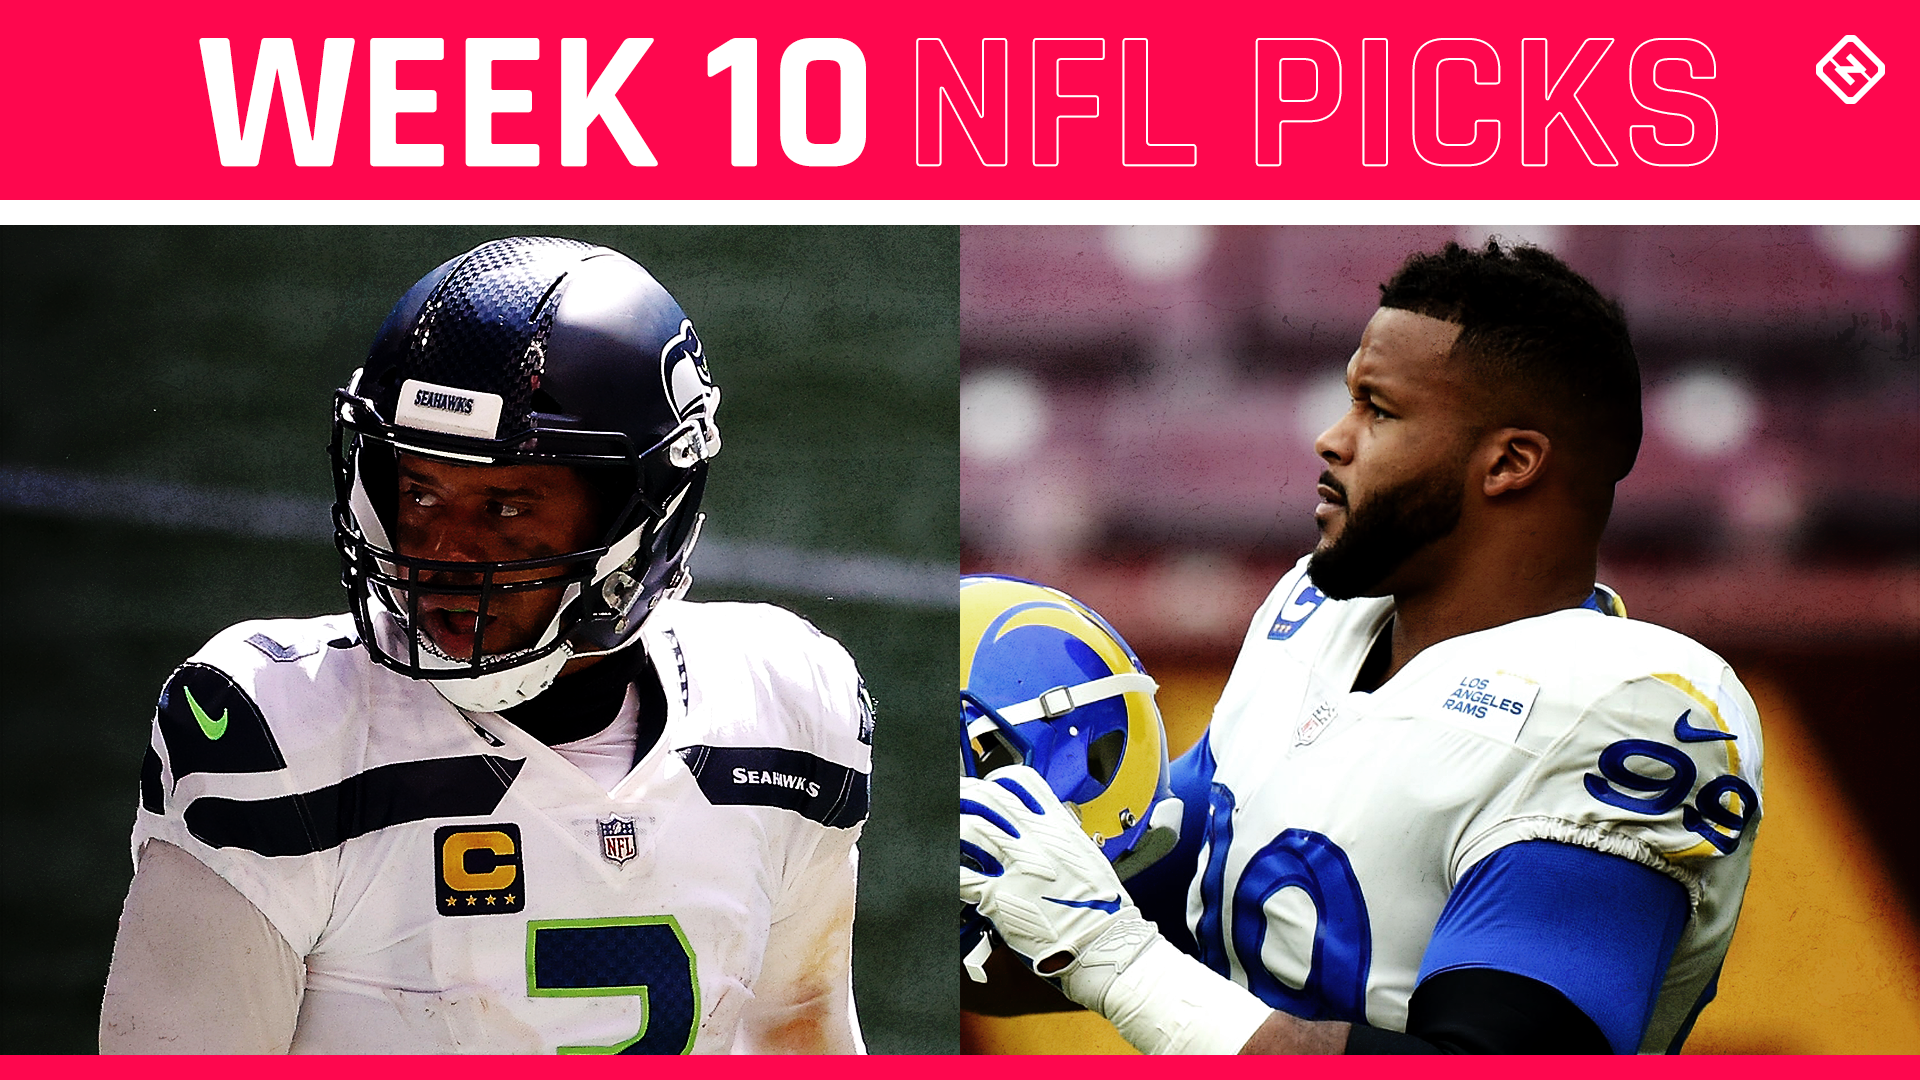 NFL expert picks, predictions for Week 10 straight up